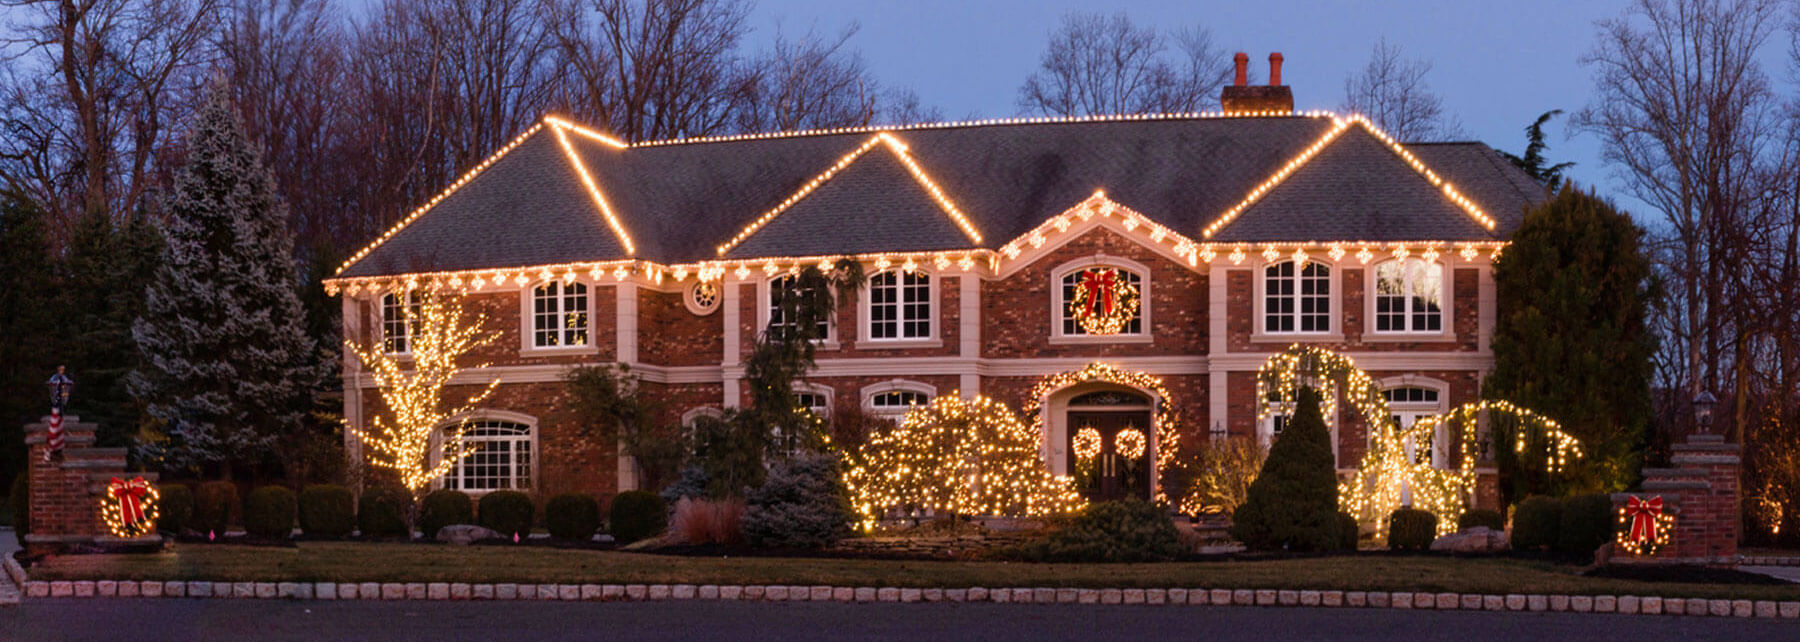 The Christmas Lighting Company servicing Pearl River, NY